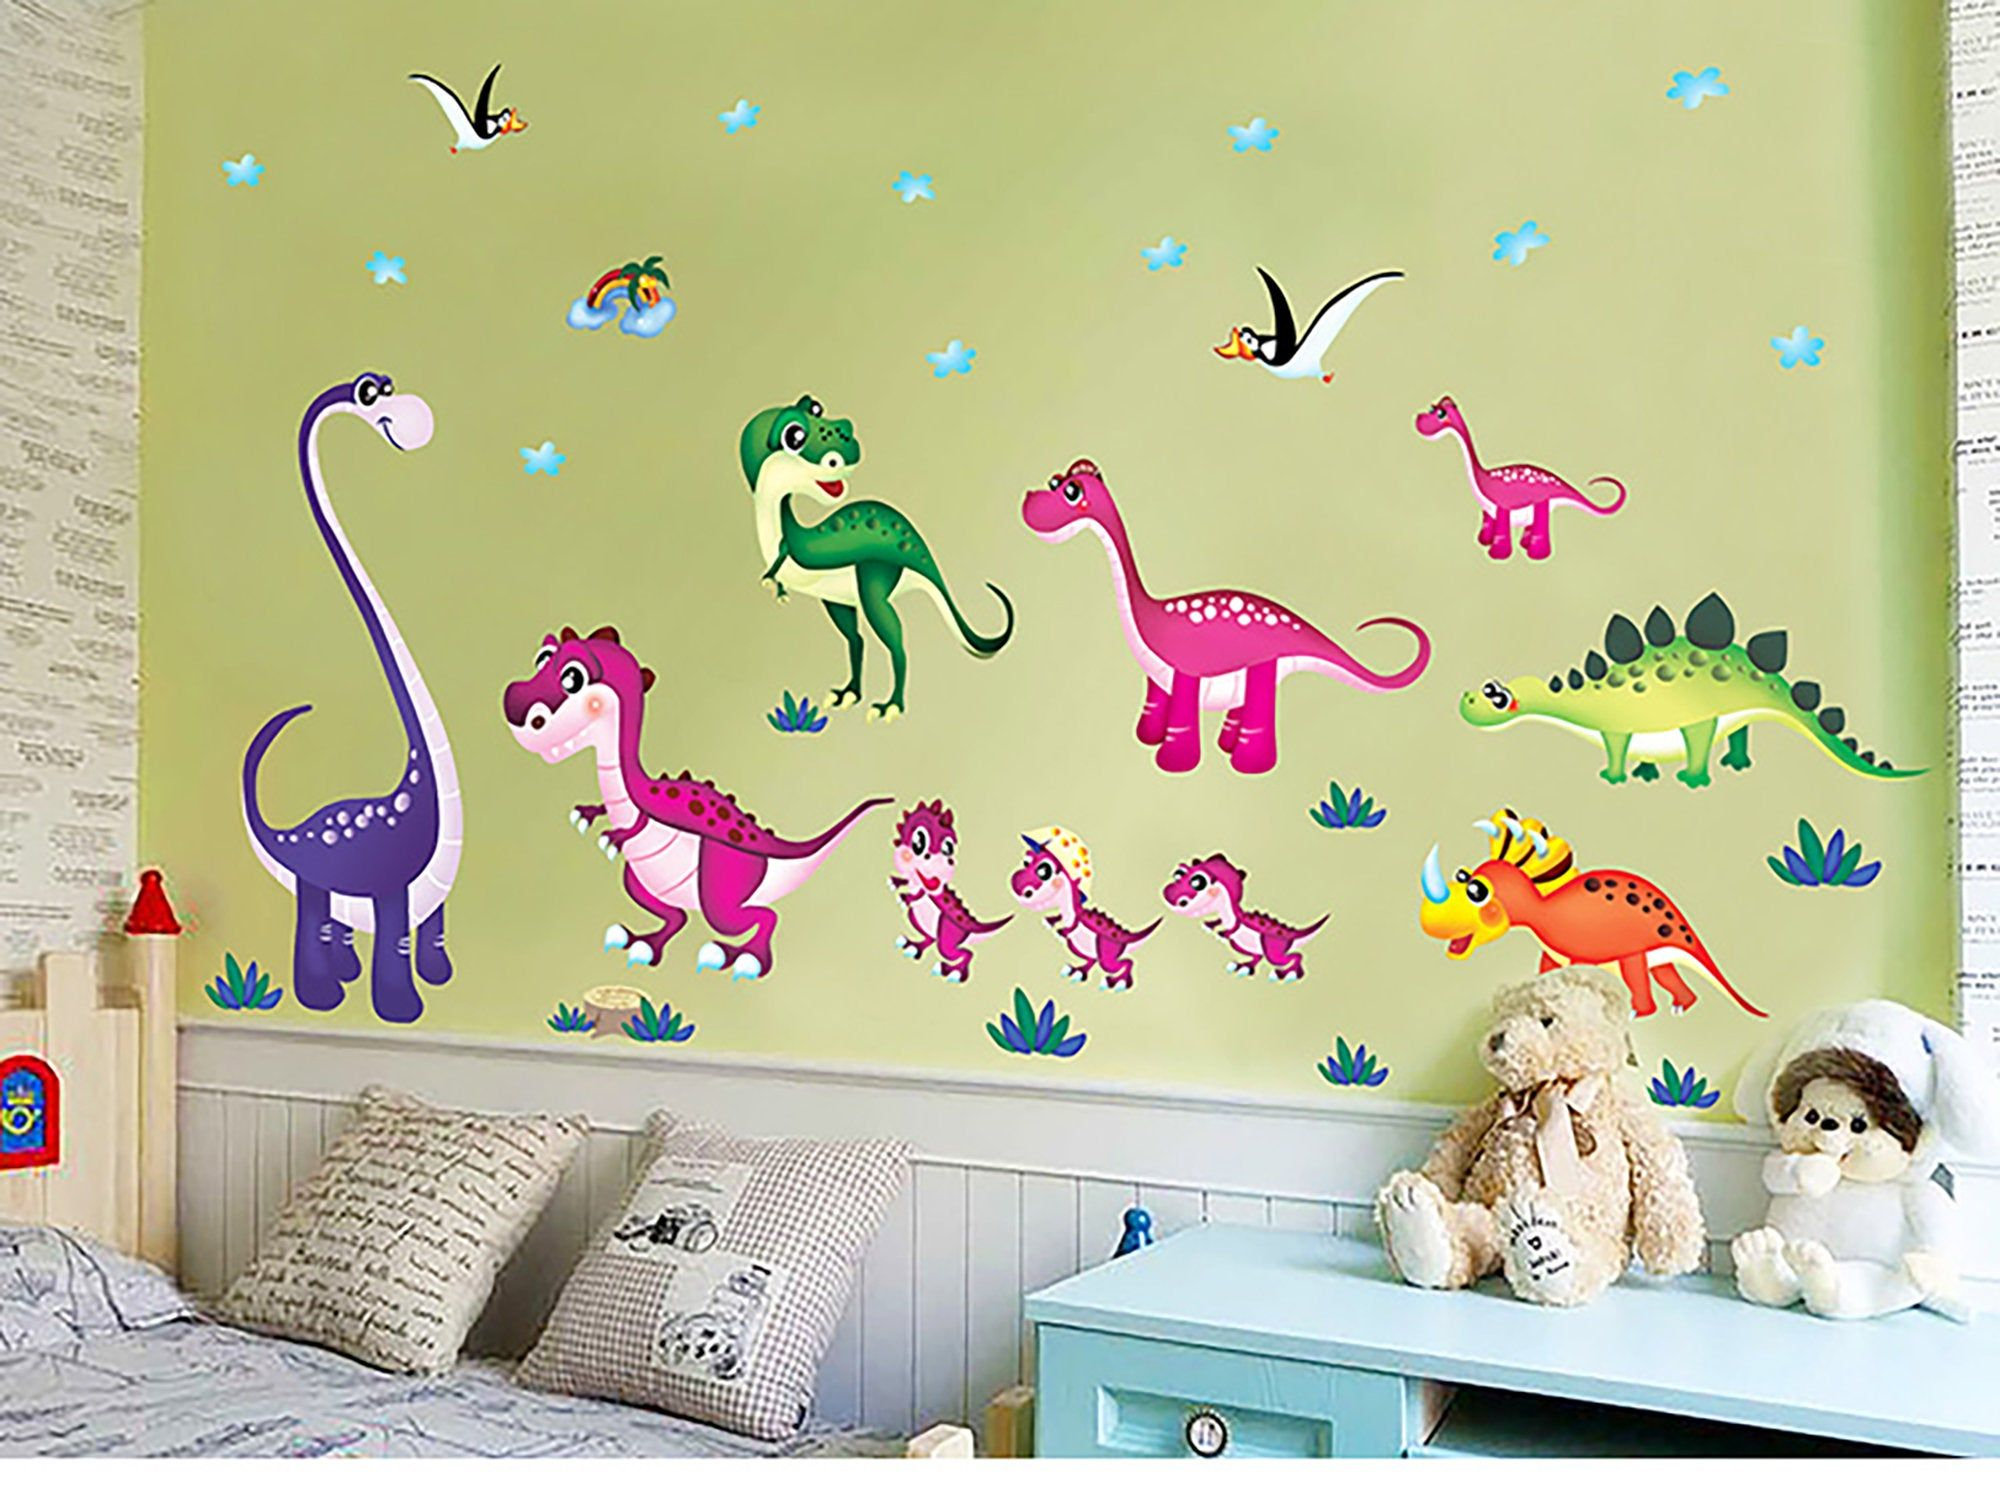 Dinosaurs Were Playing In The Grass Wall Sticker Baby Room